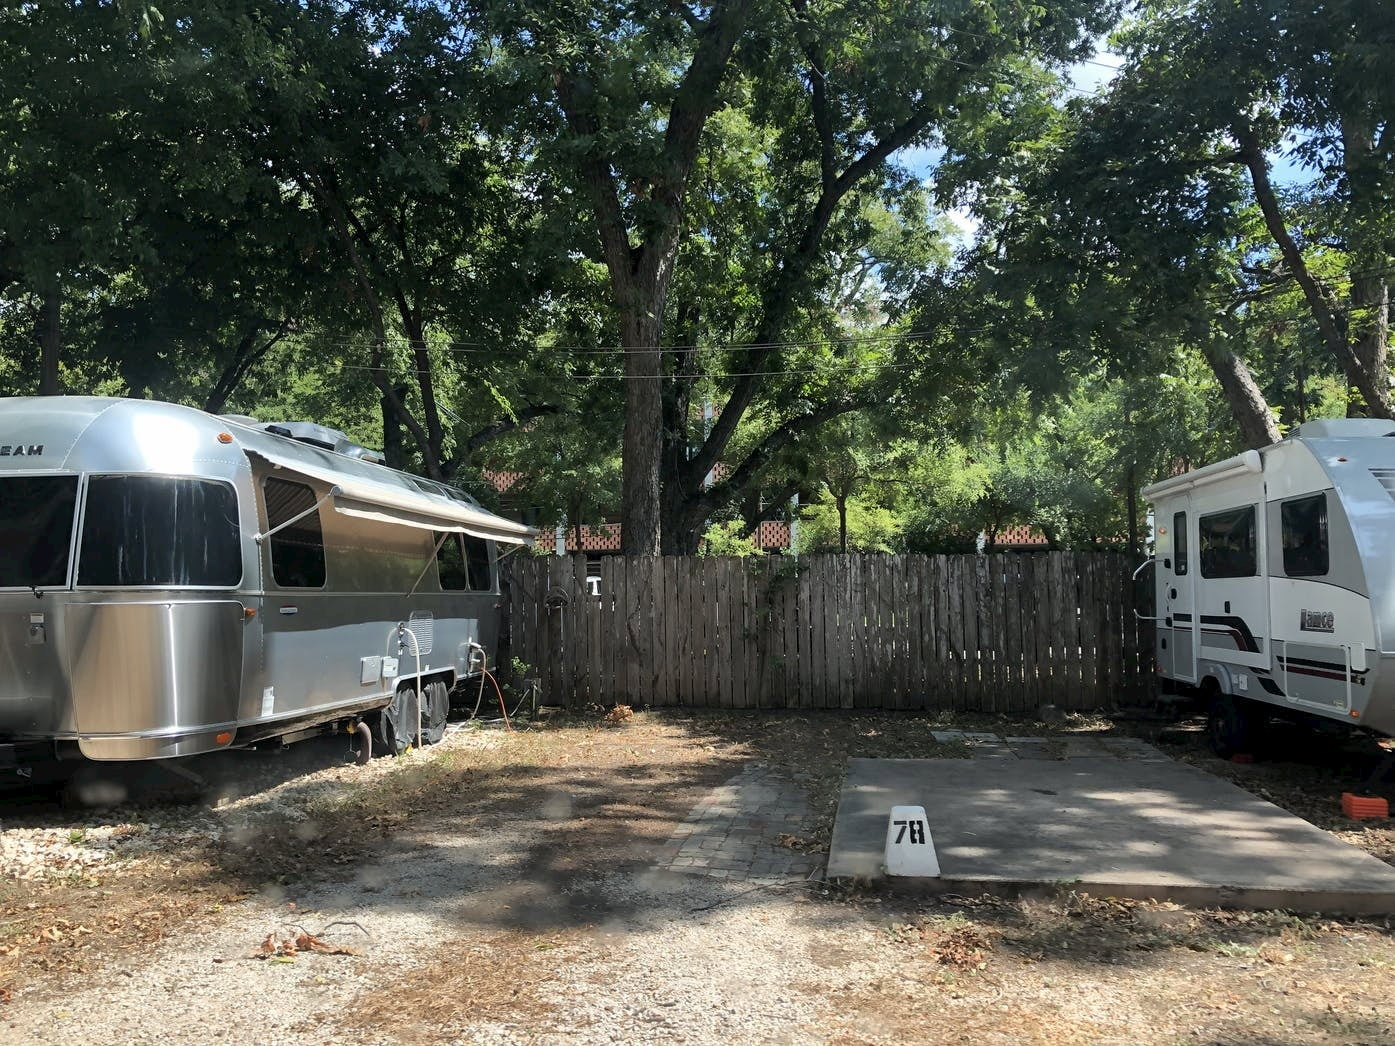 Two RVs parked beside picket fence at RV campground.